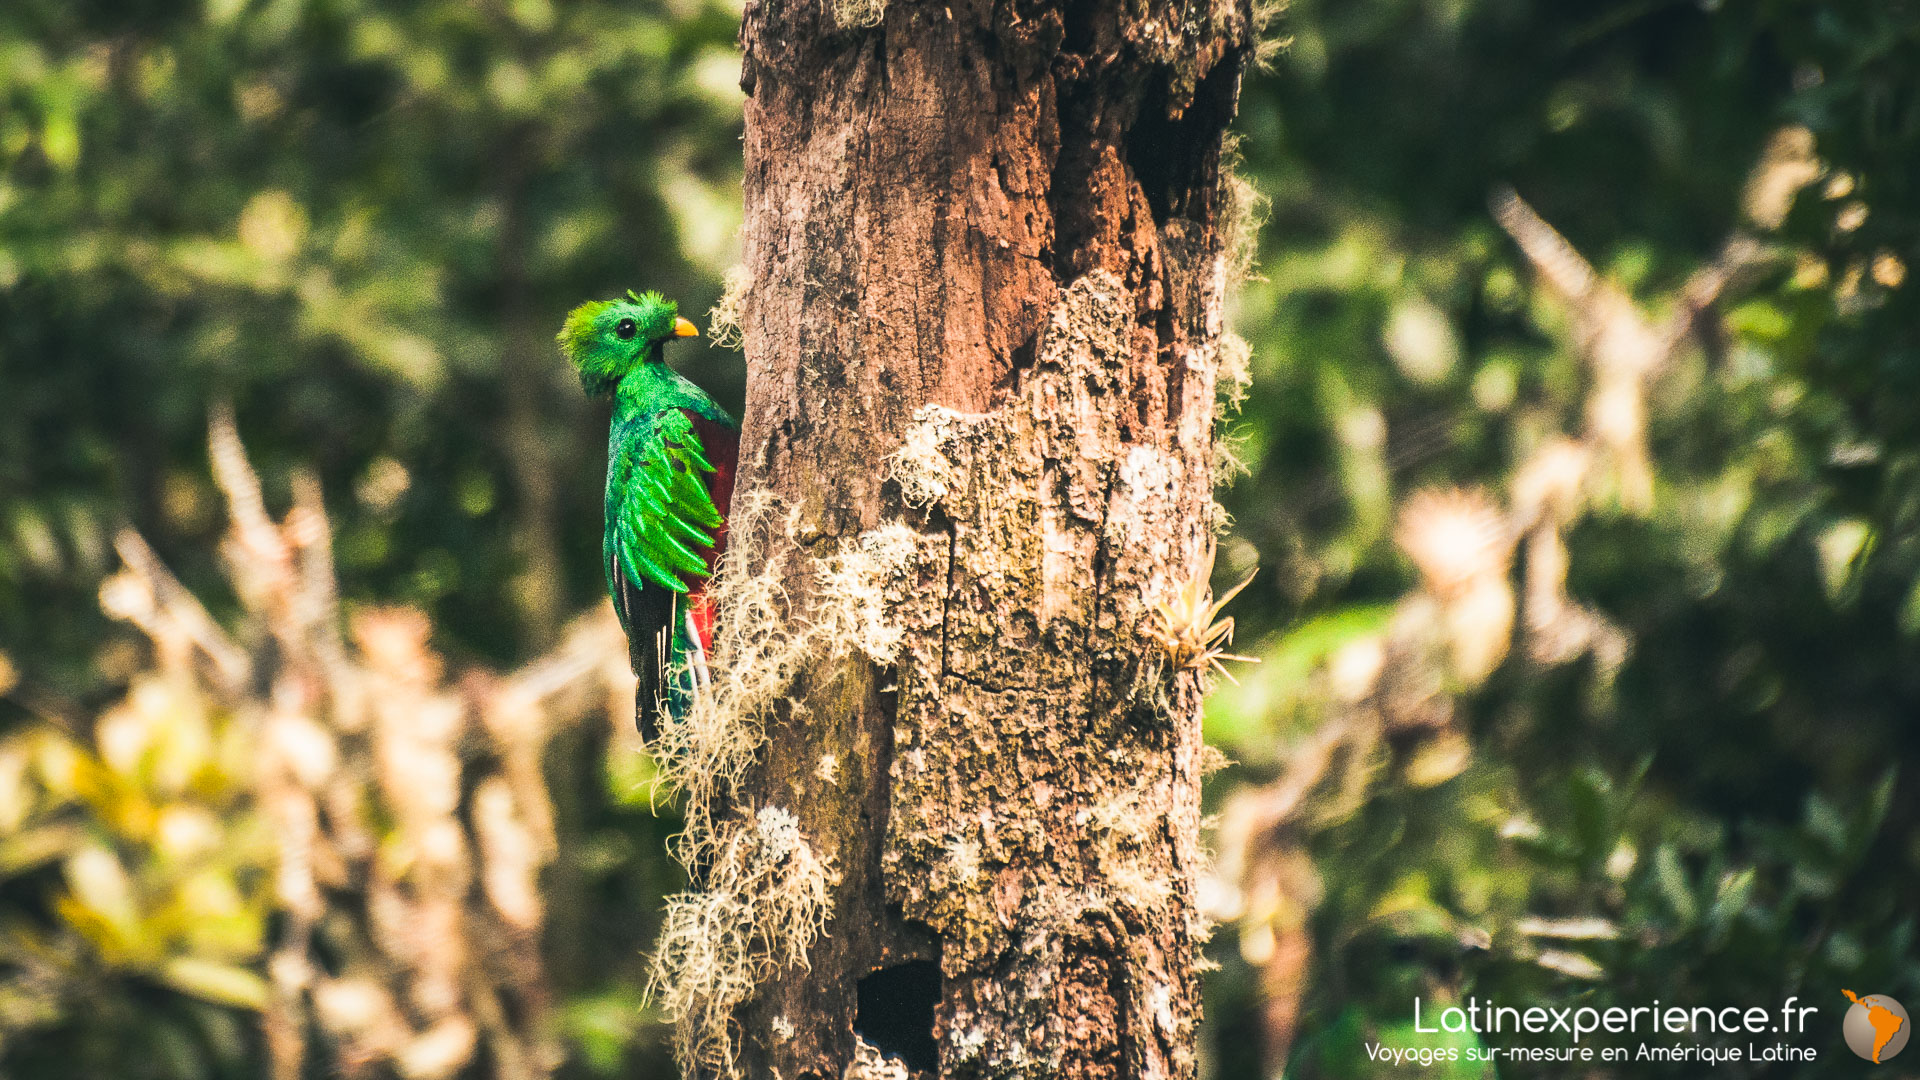 Costa Rica - Quetzal - Latinexperience voyages